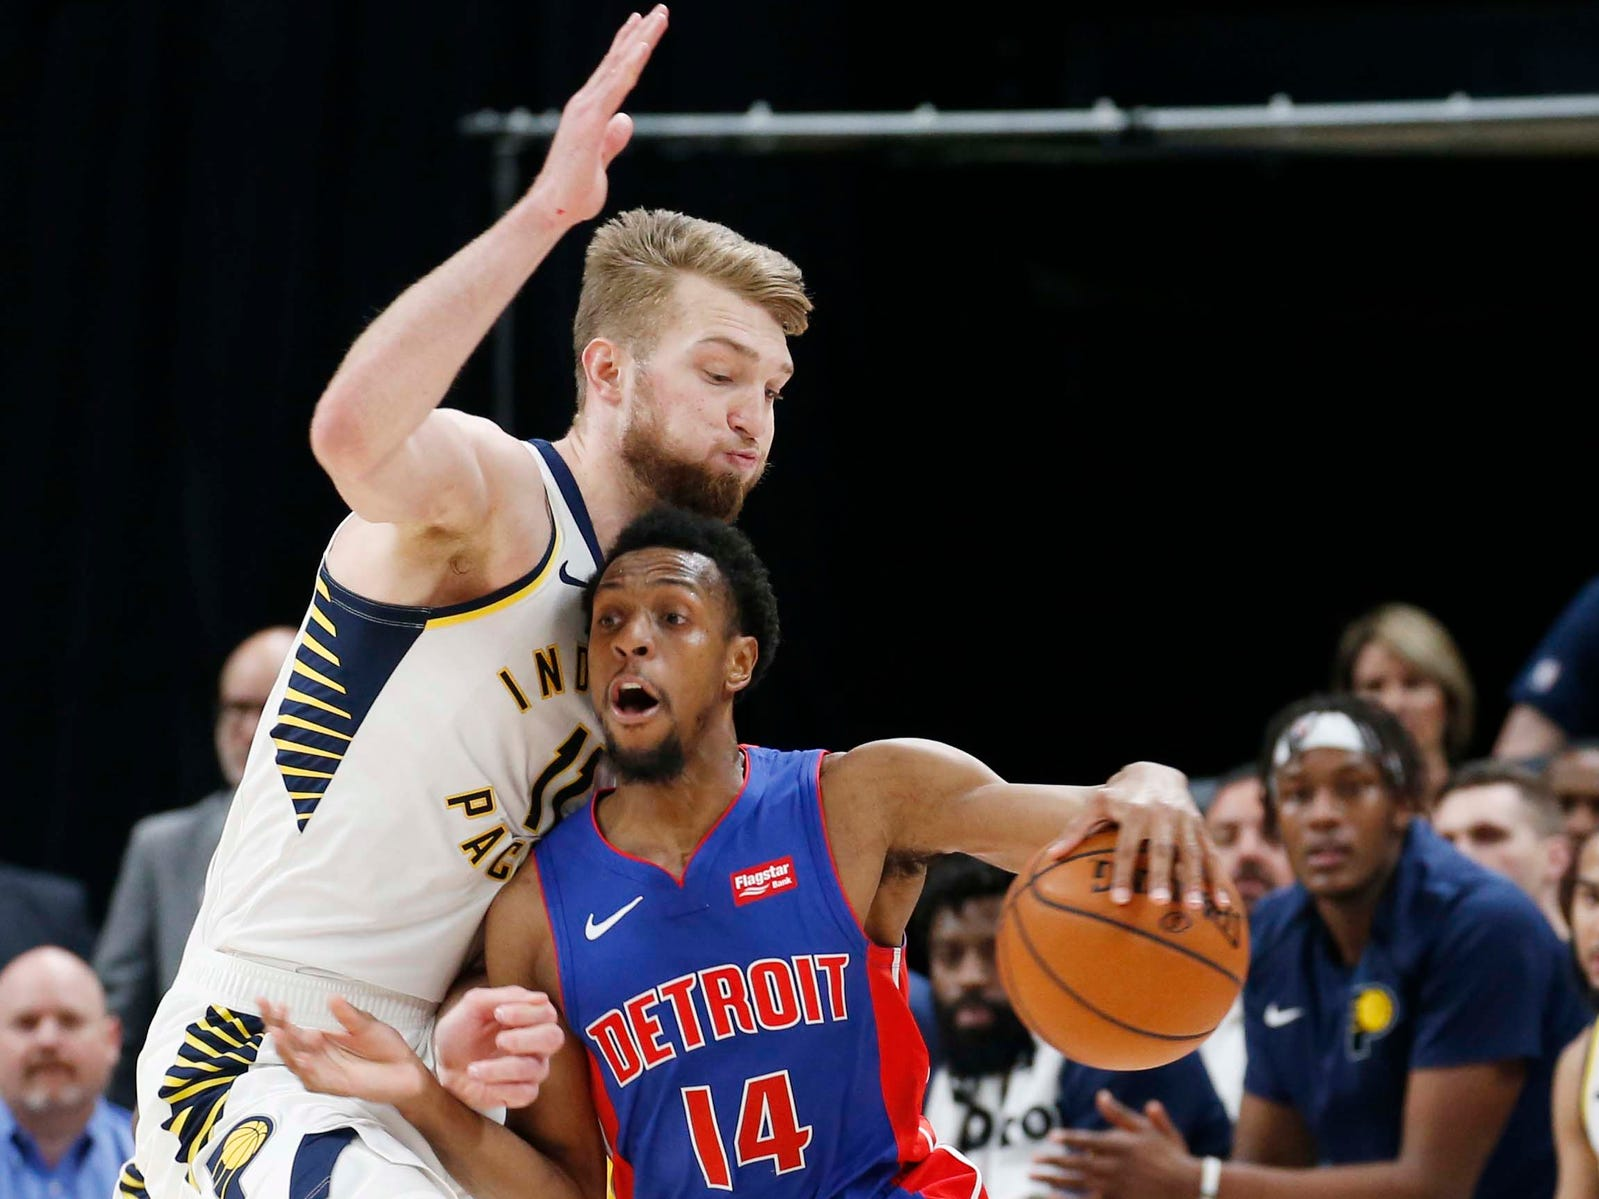 Detroit Pistons guard Ish Smith is guarded by Indiana Pacers forward Domantas Sabonis during the fourth quarter at Bankers Life Fieldhouse, April 1, 2019.